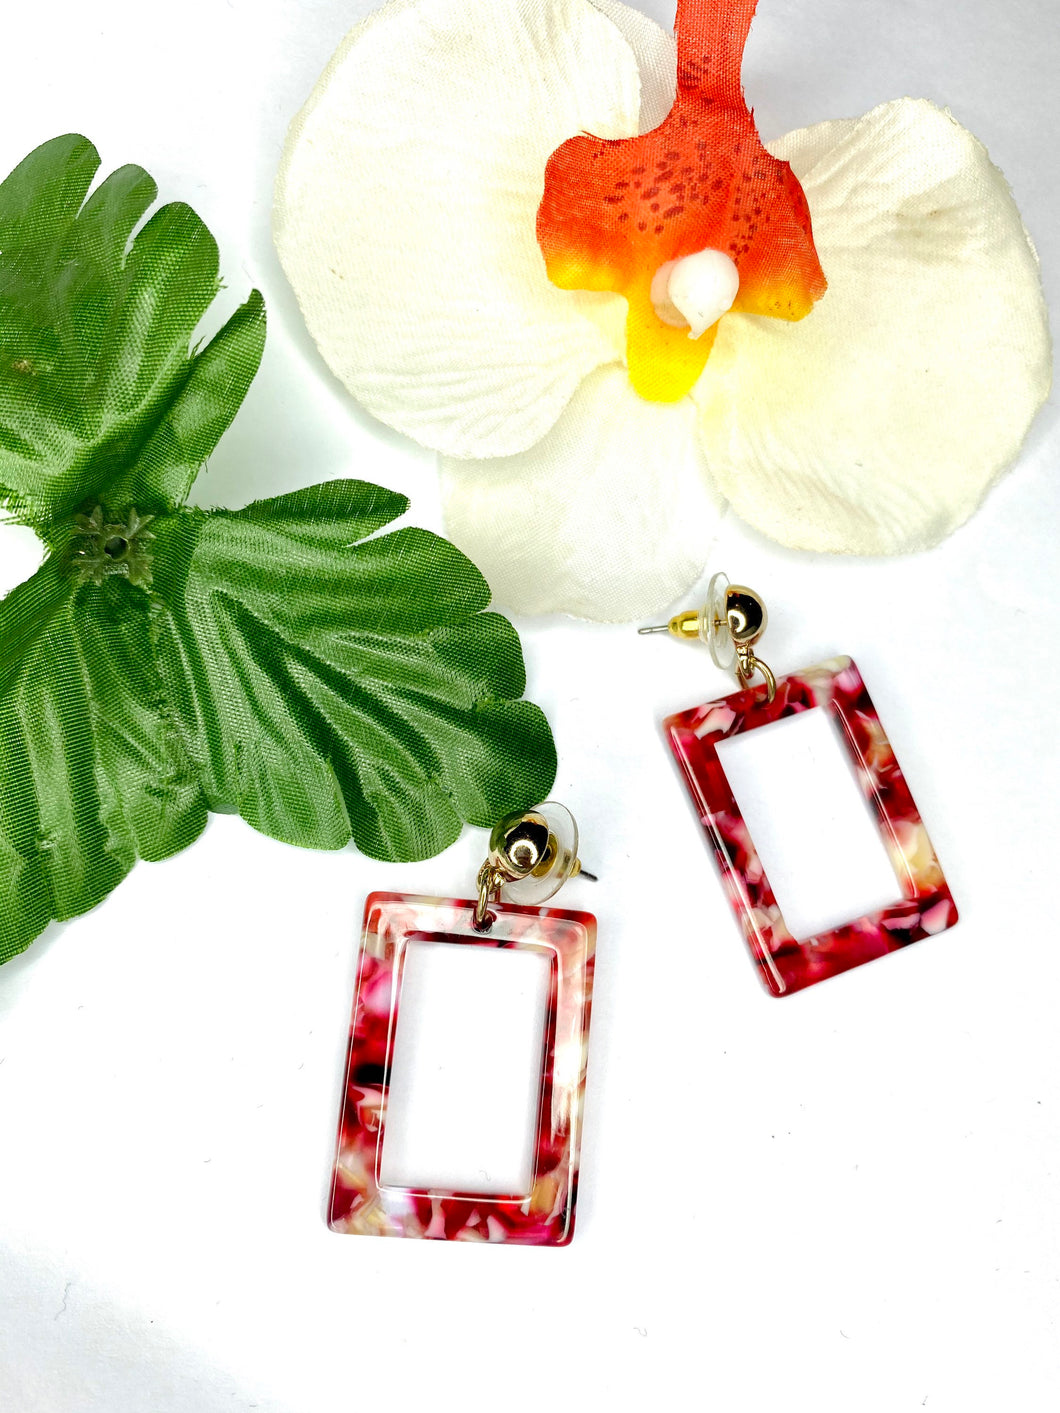 Dangle Earrings. - Square Shape - Statement Earrings - Brown Red Drop Down Earrings